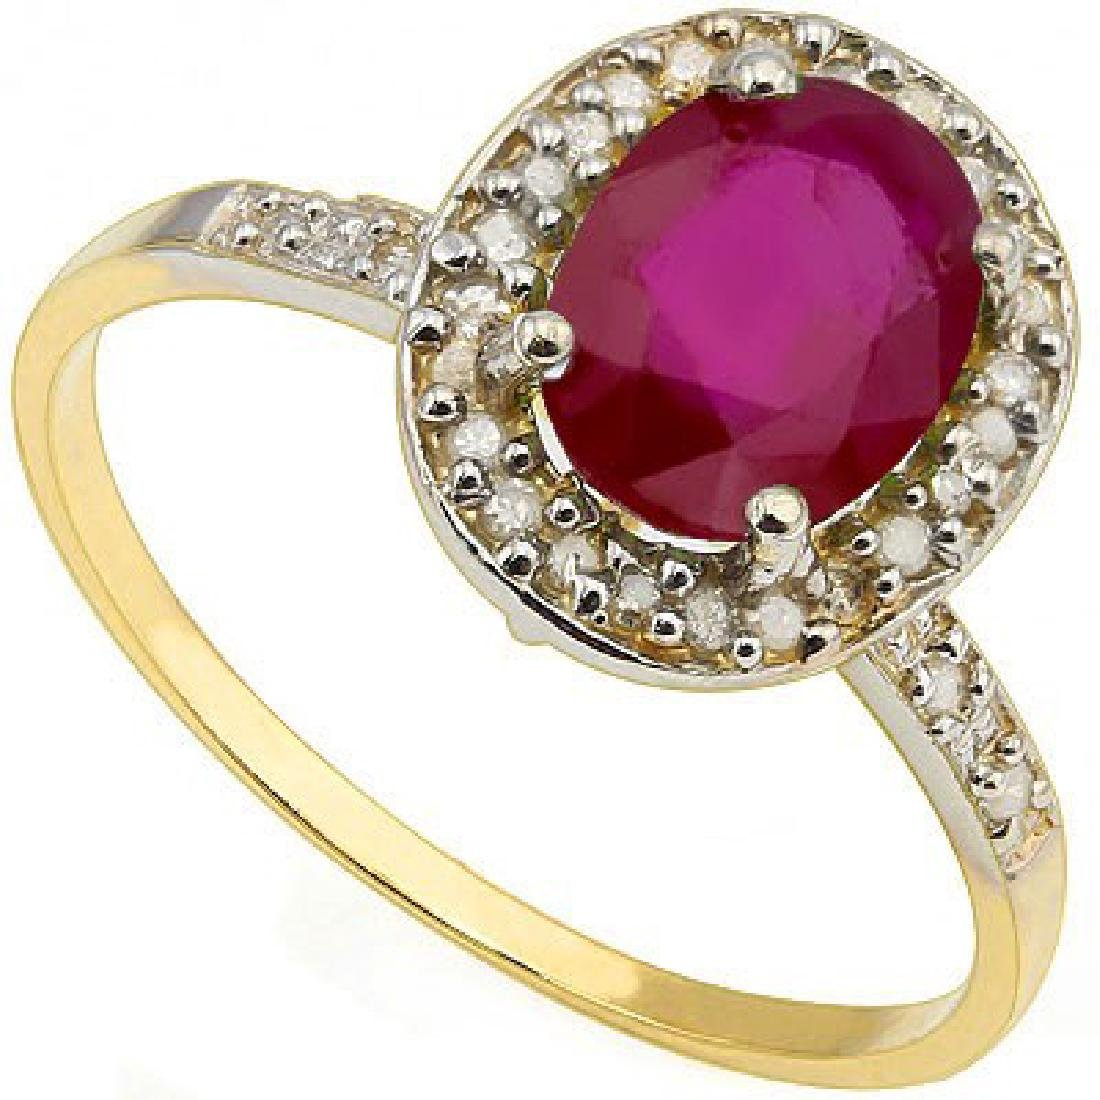 10K GOLD GORGEOUS 1CT AFRICAN RUBY/DIAMOND RING